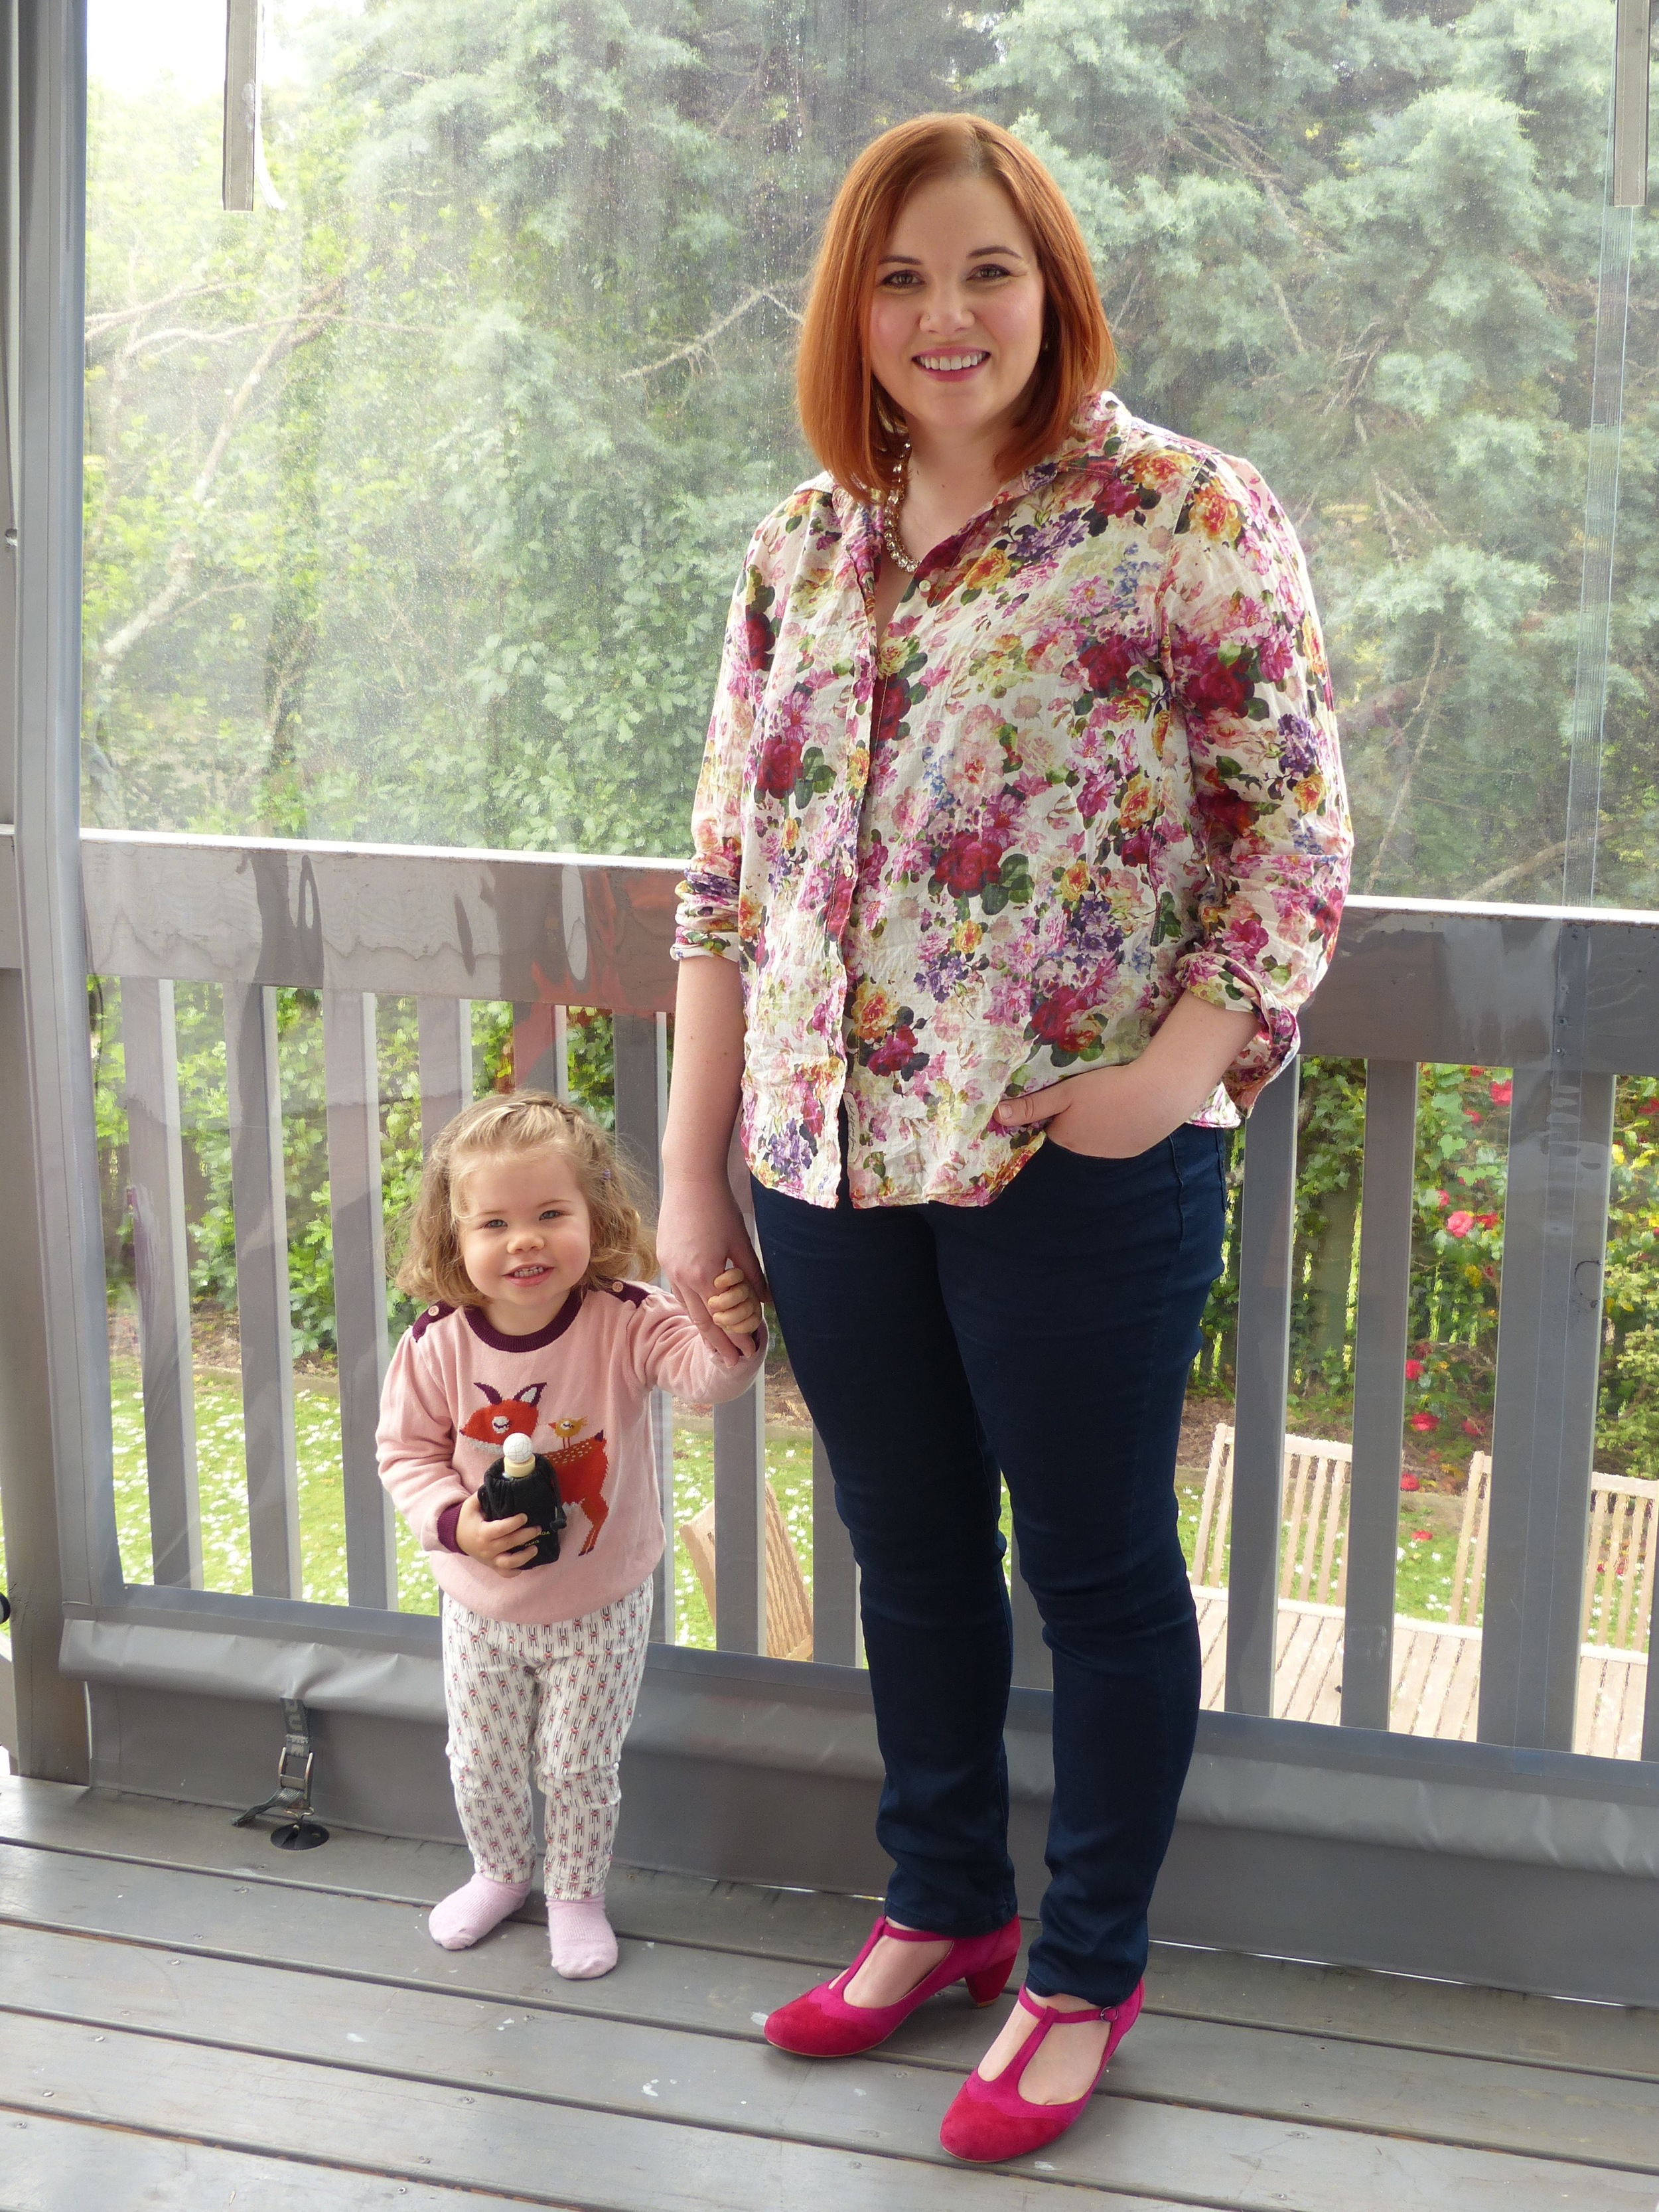 'You can't have a photo without me Mummy!' Shirt by H&M, jeans by Amco for The Warehouse, shoes by Minx.